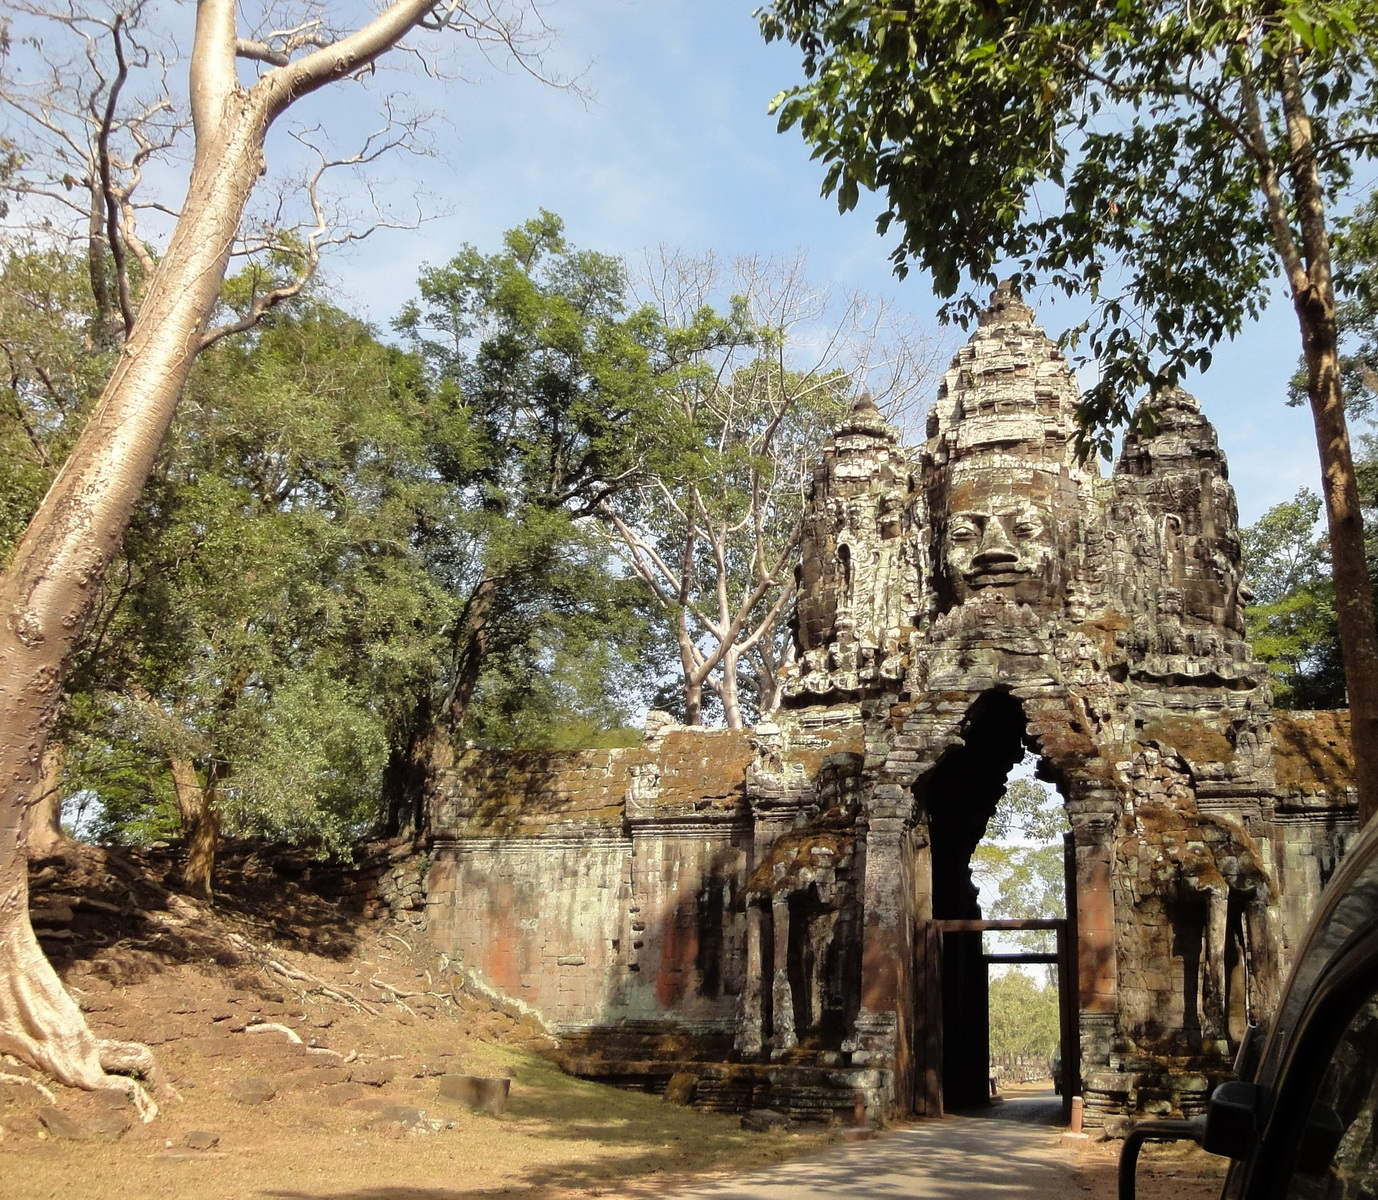 Angkor Wat style architecture North Gate Jan 2010 02